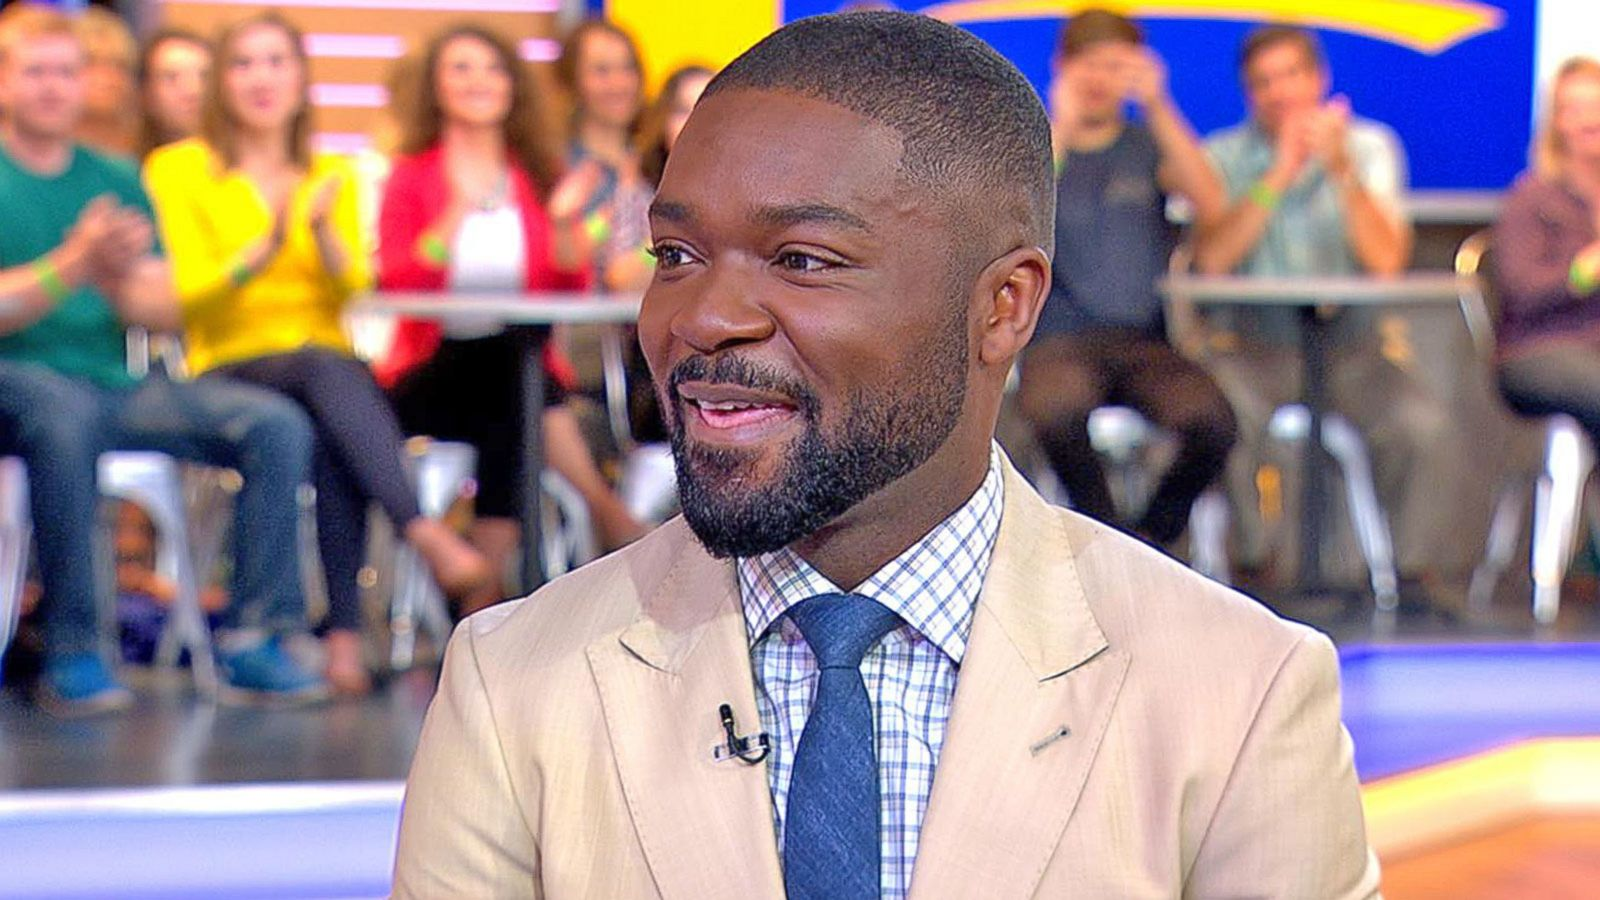 VIDEO: David Oyelowo Talks 'Queen of Katwe' on 'GMA'